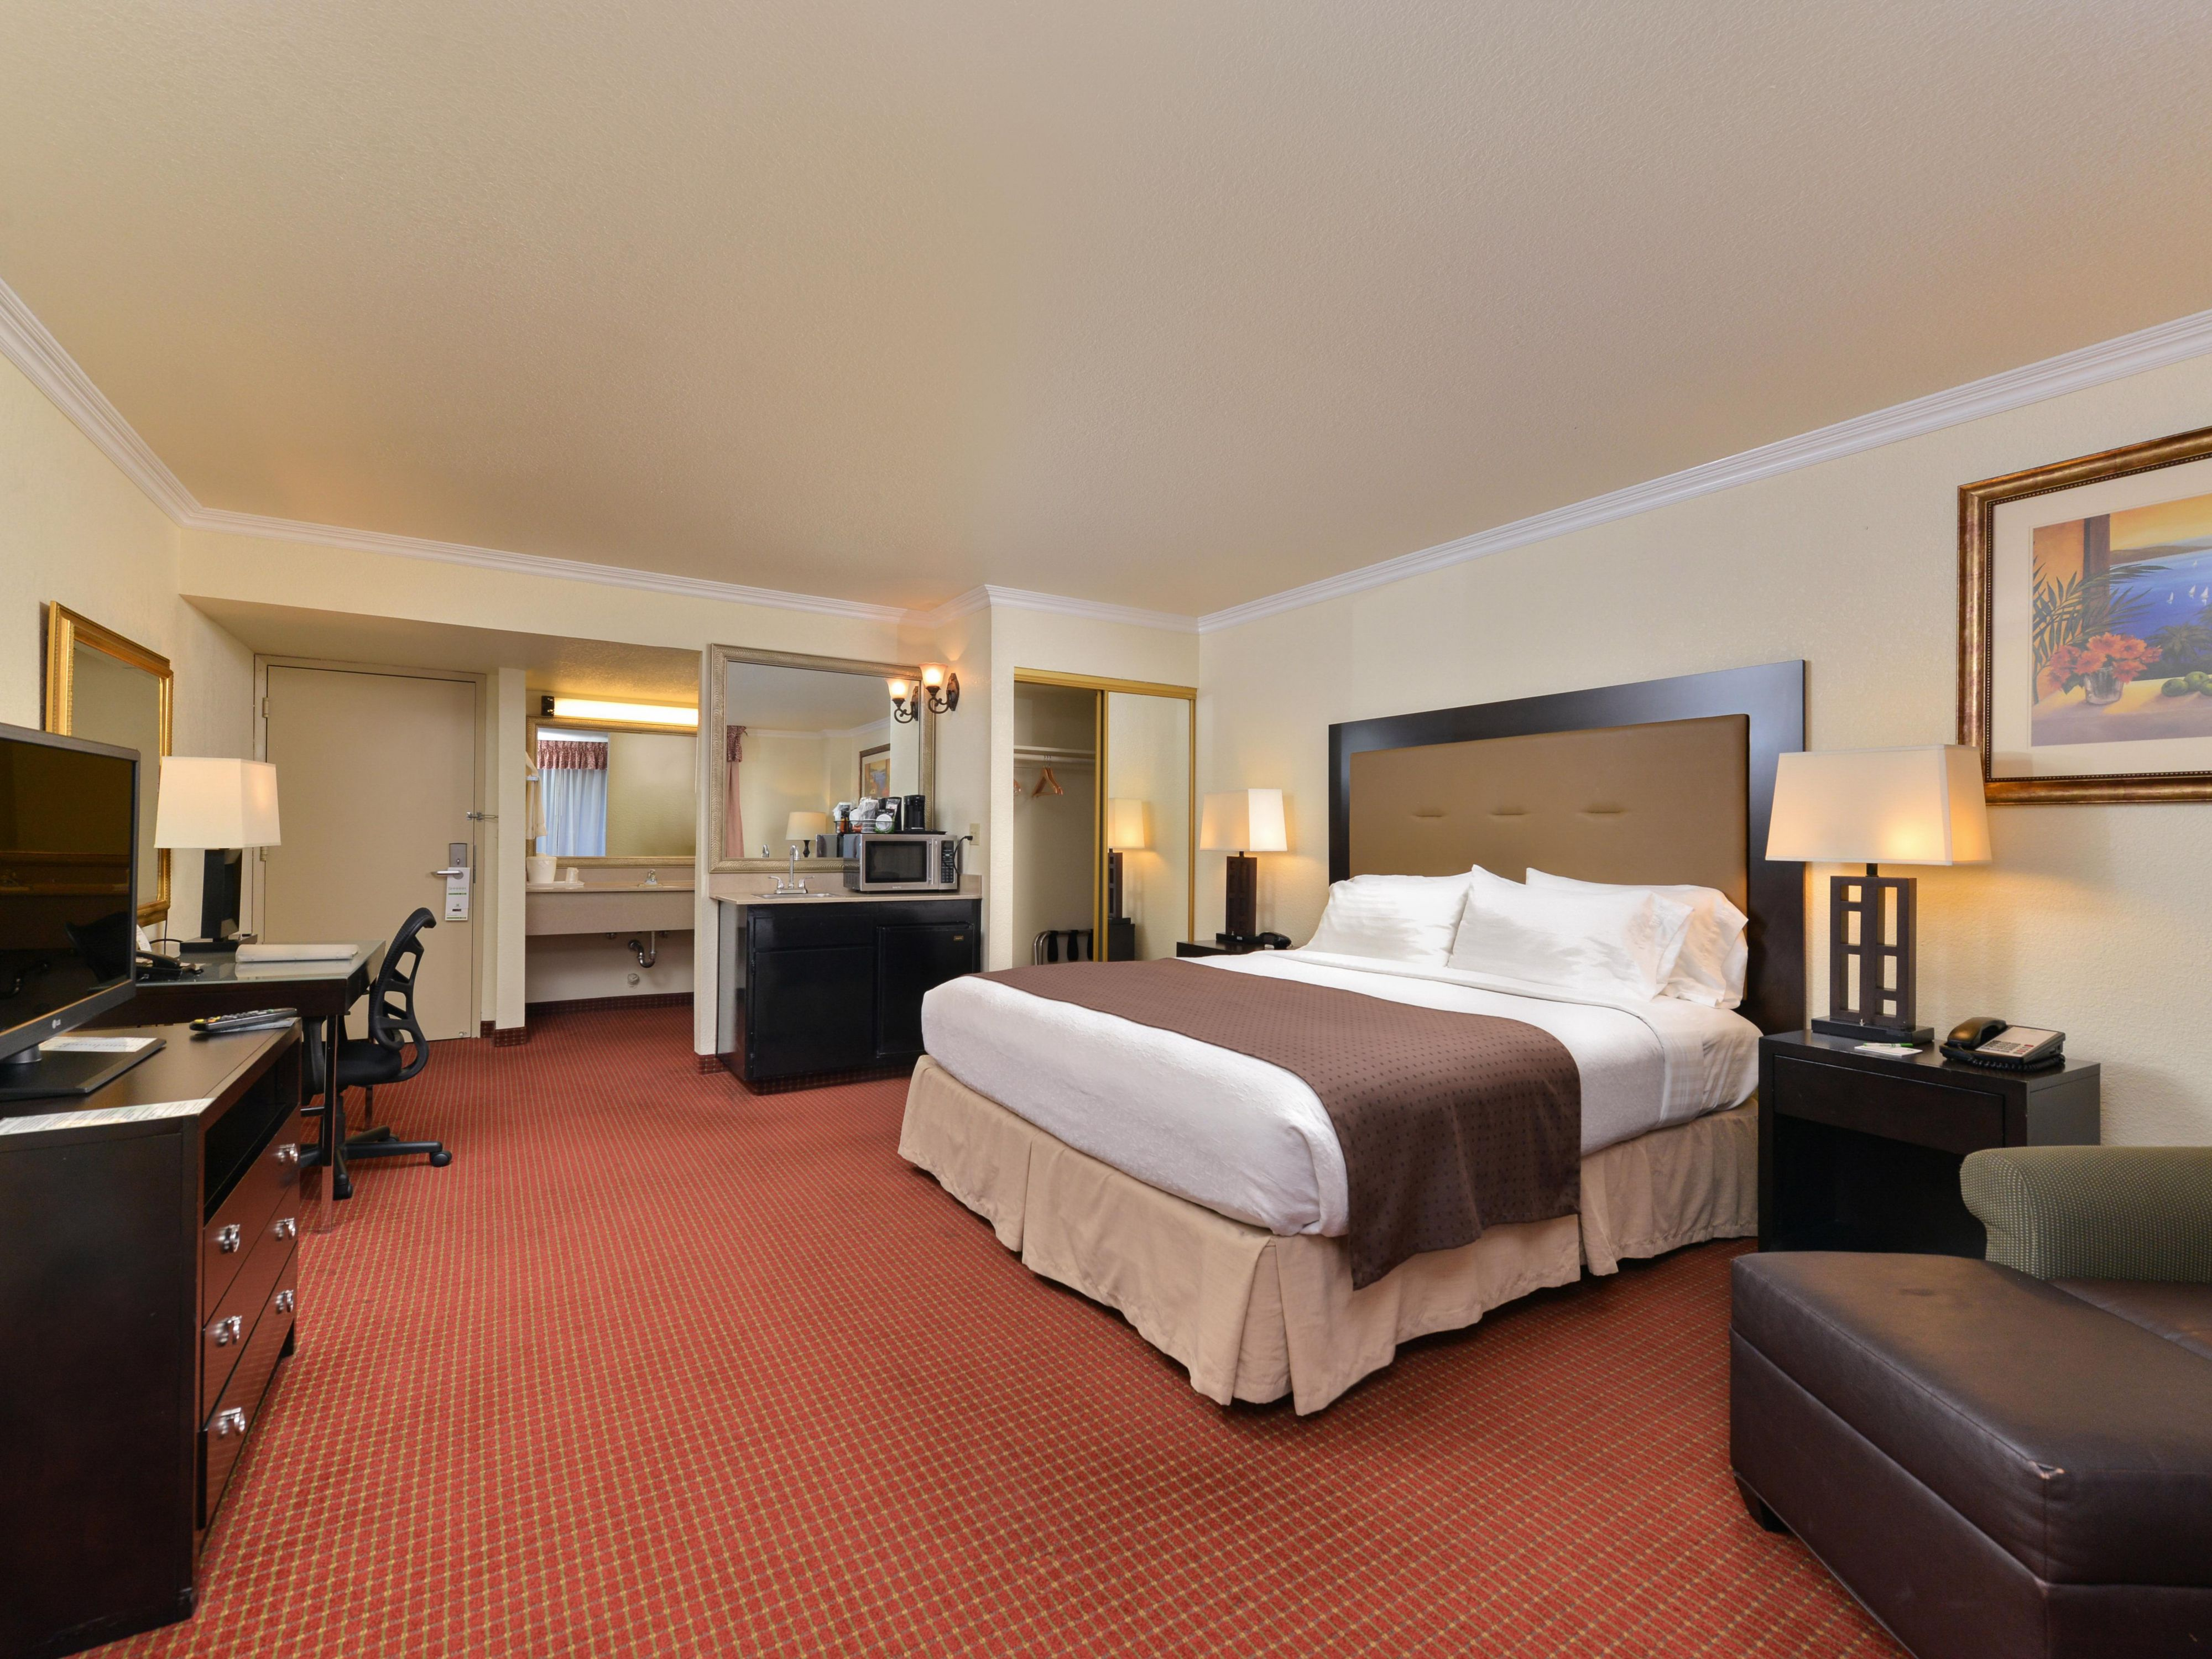 Relax in our spacious King room with a jacuzzi tub